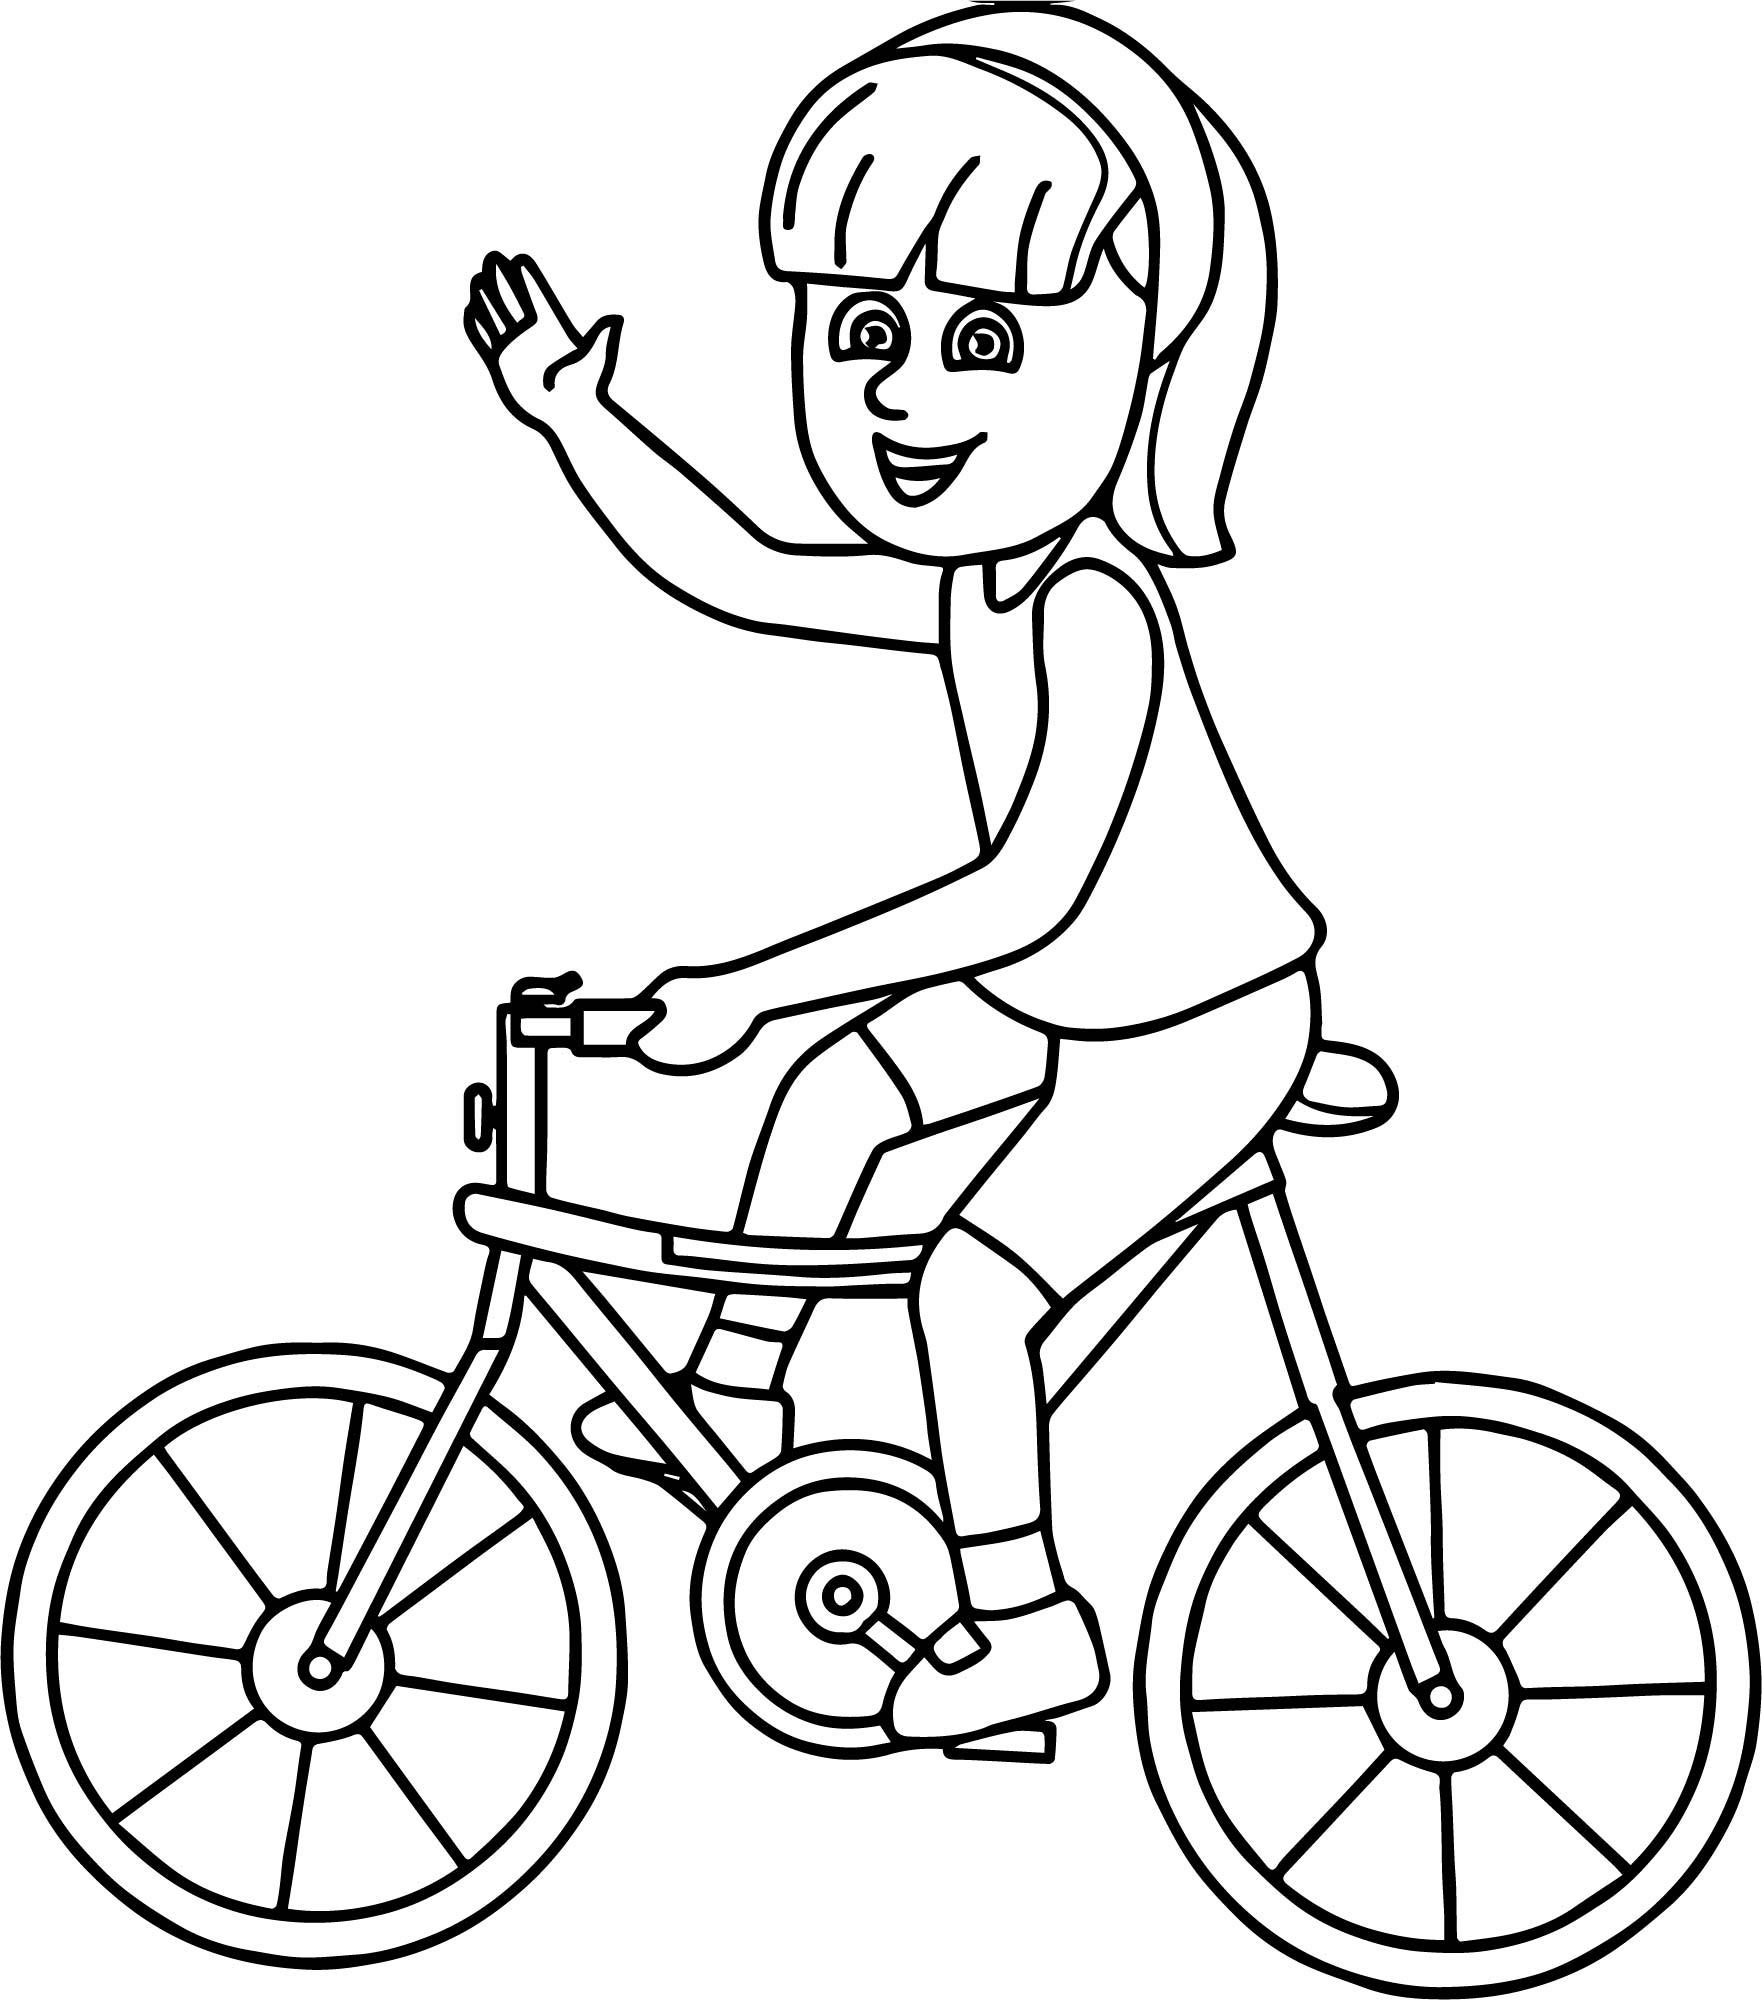 Bike Coloring Pages Adorable Riding Girl On Bicycle Coloring Page  Wecoloringpage Design Decoration